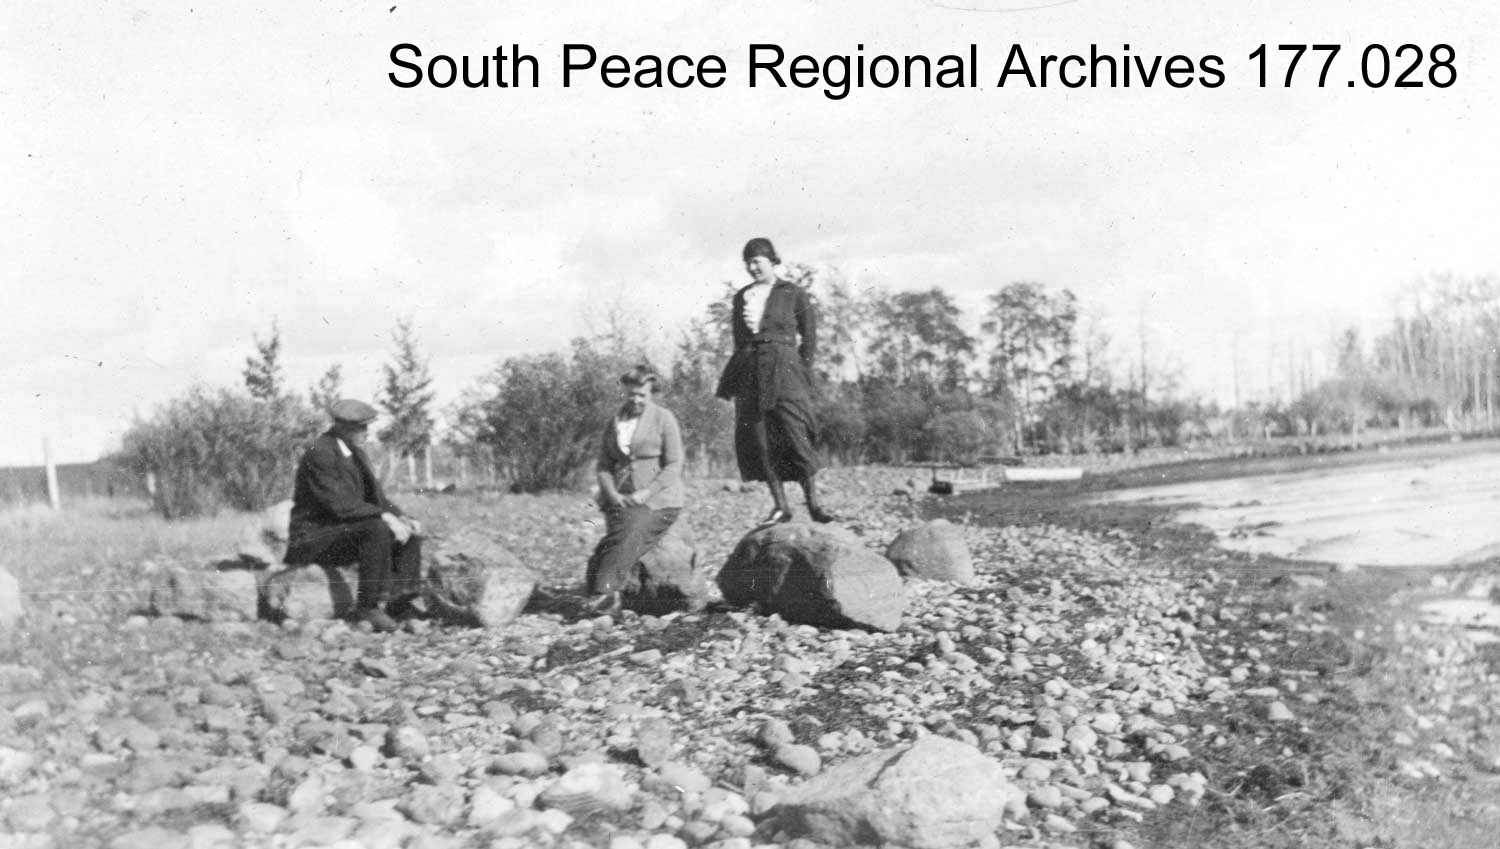 SPRA 0177.028: Mr & Mrs. Bredin with Marjory Bradford, daughter of Dr. Andrew Bradford, on the shores of Bear Lake near their home, ca. 1920.